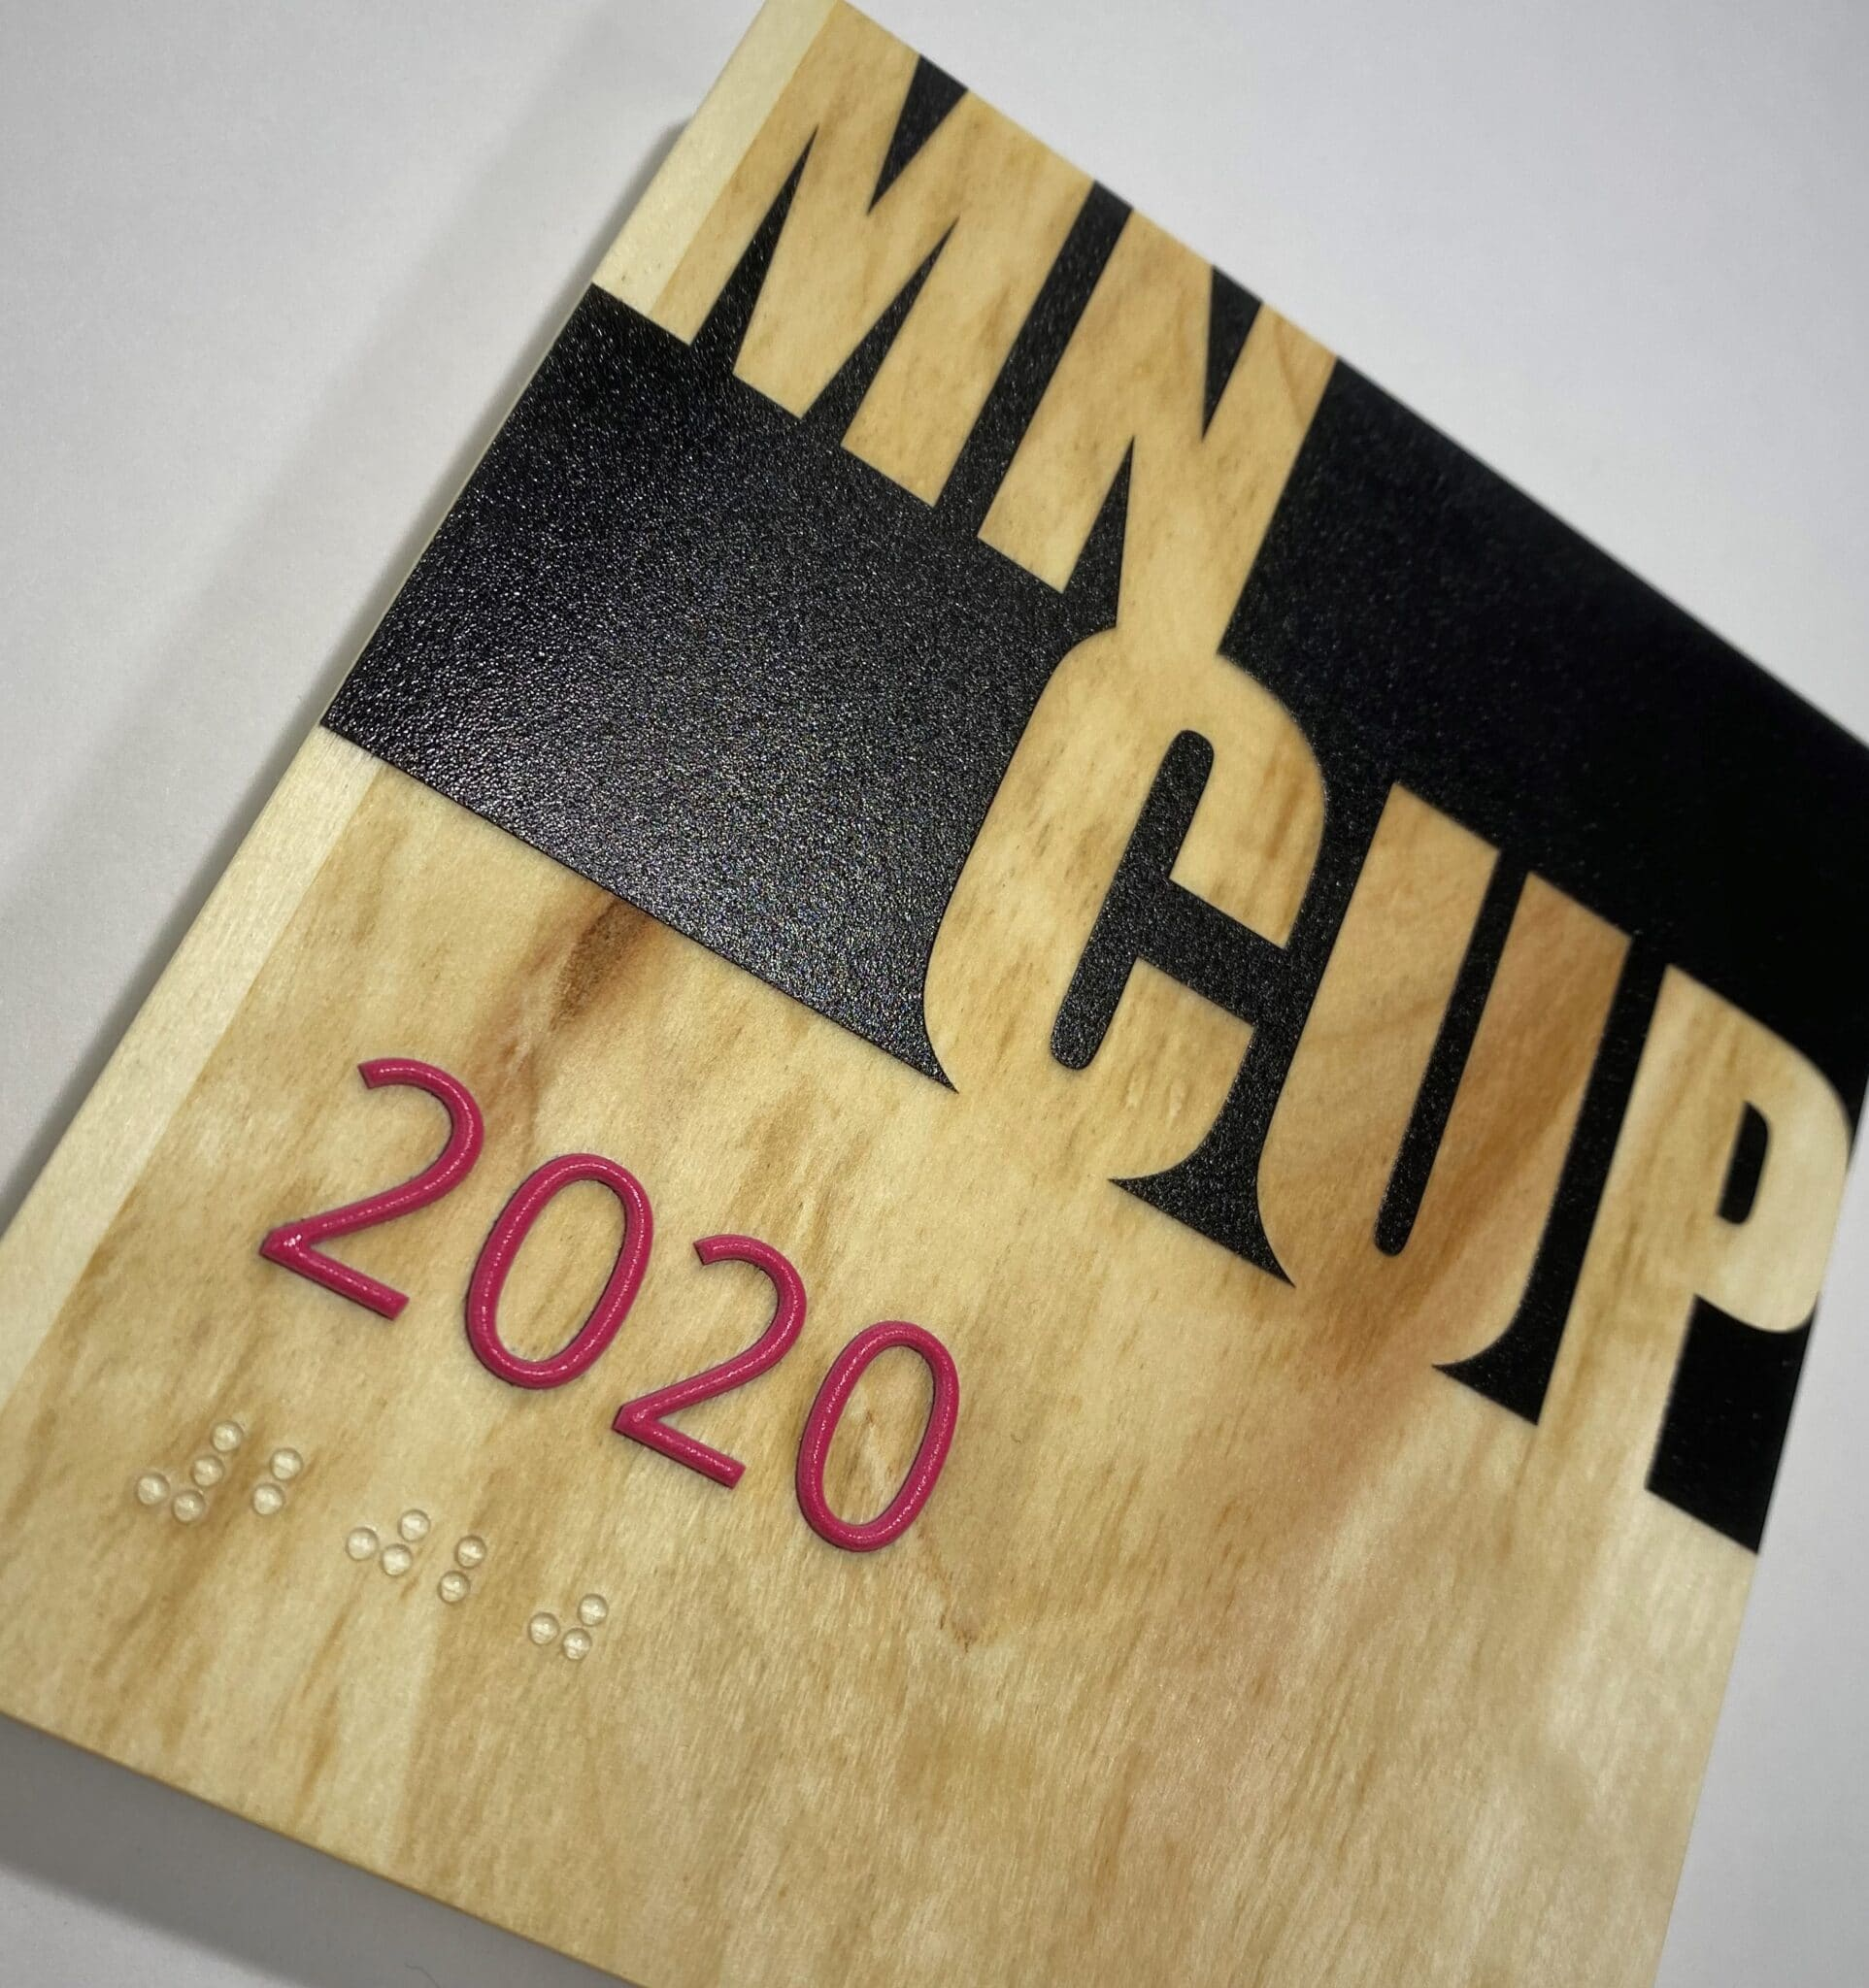 MN cup 2020